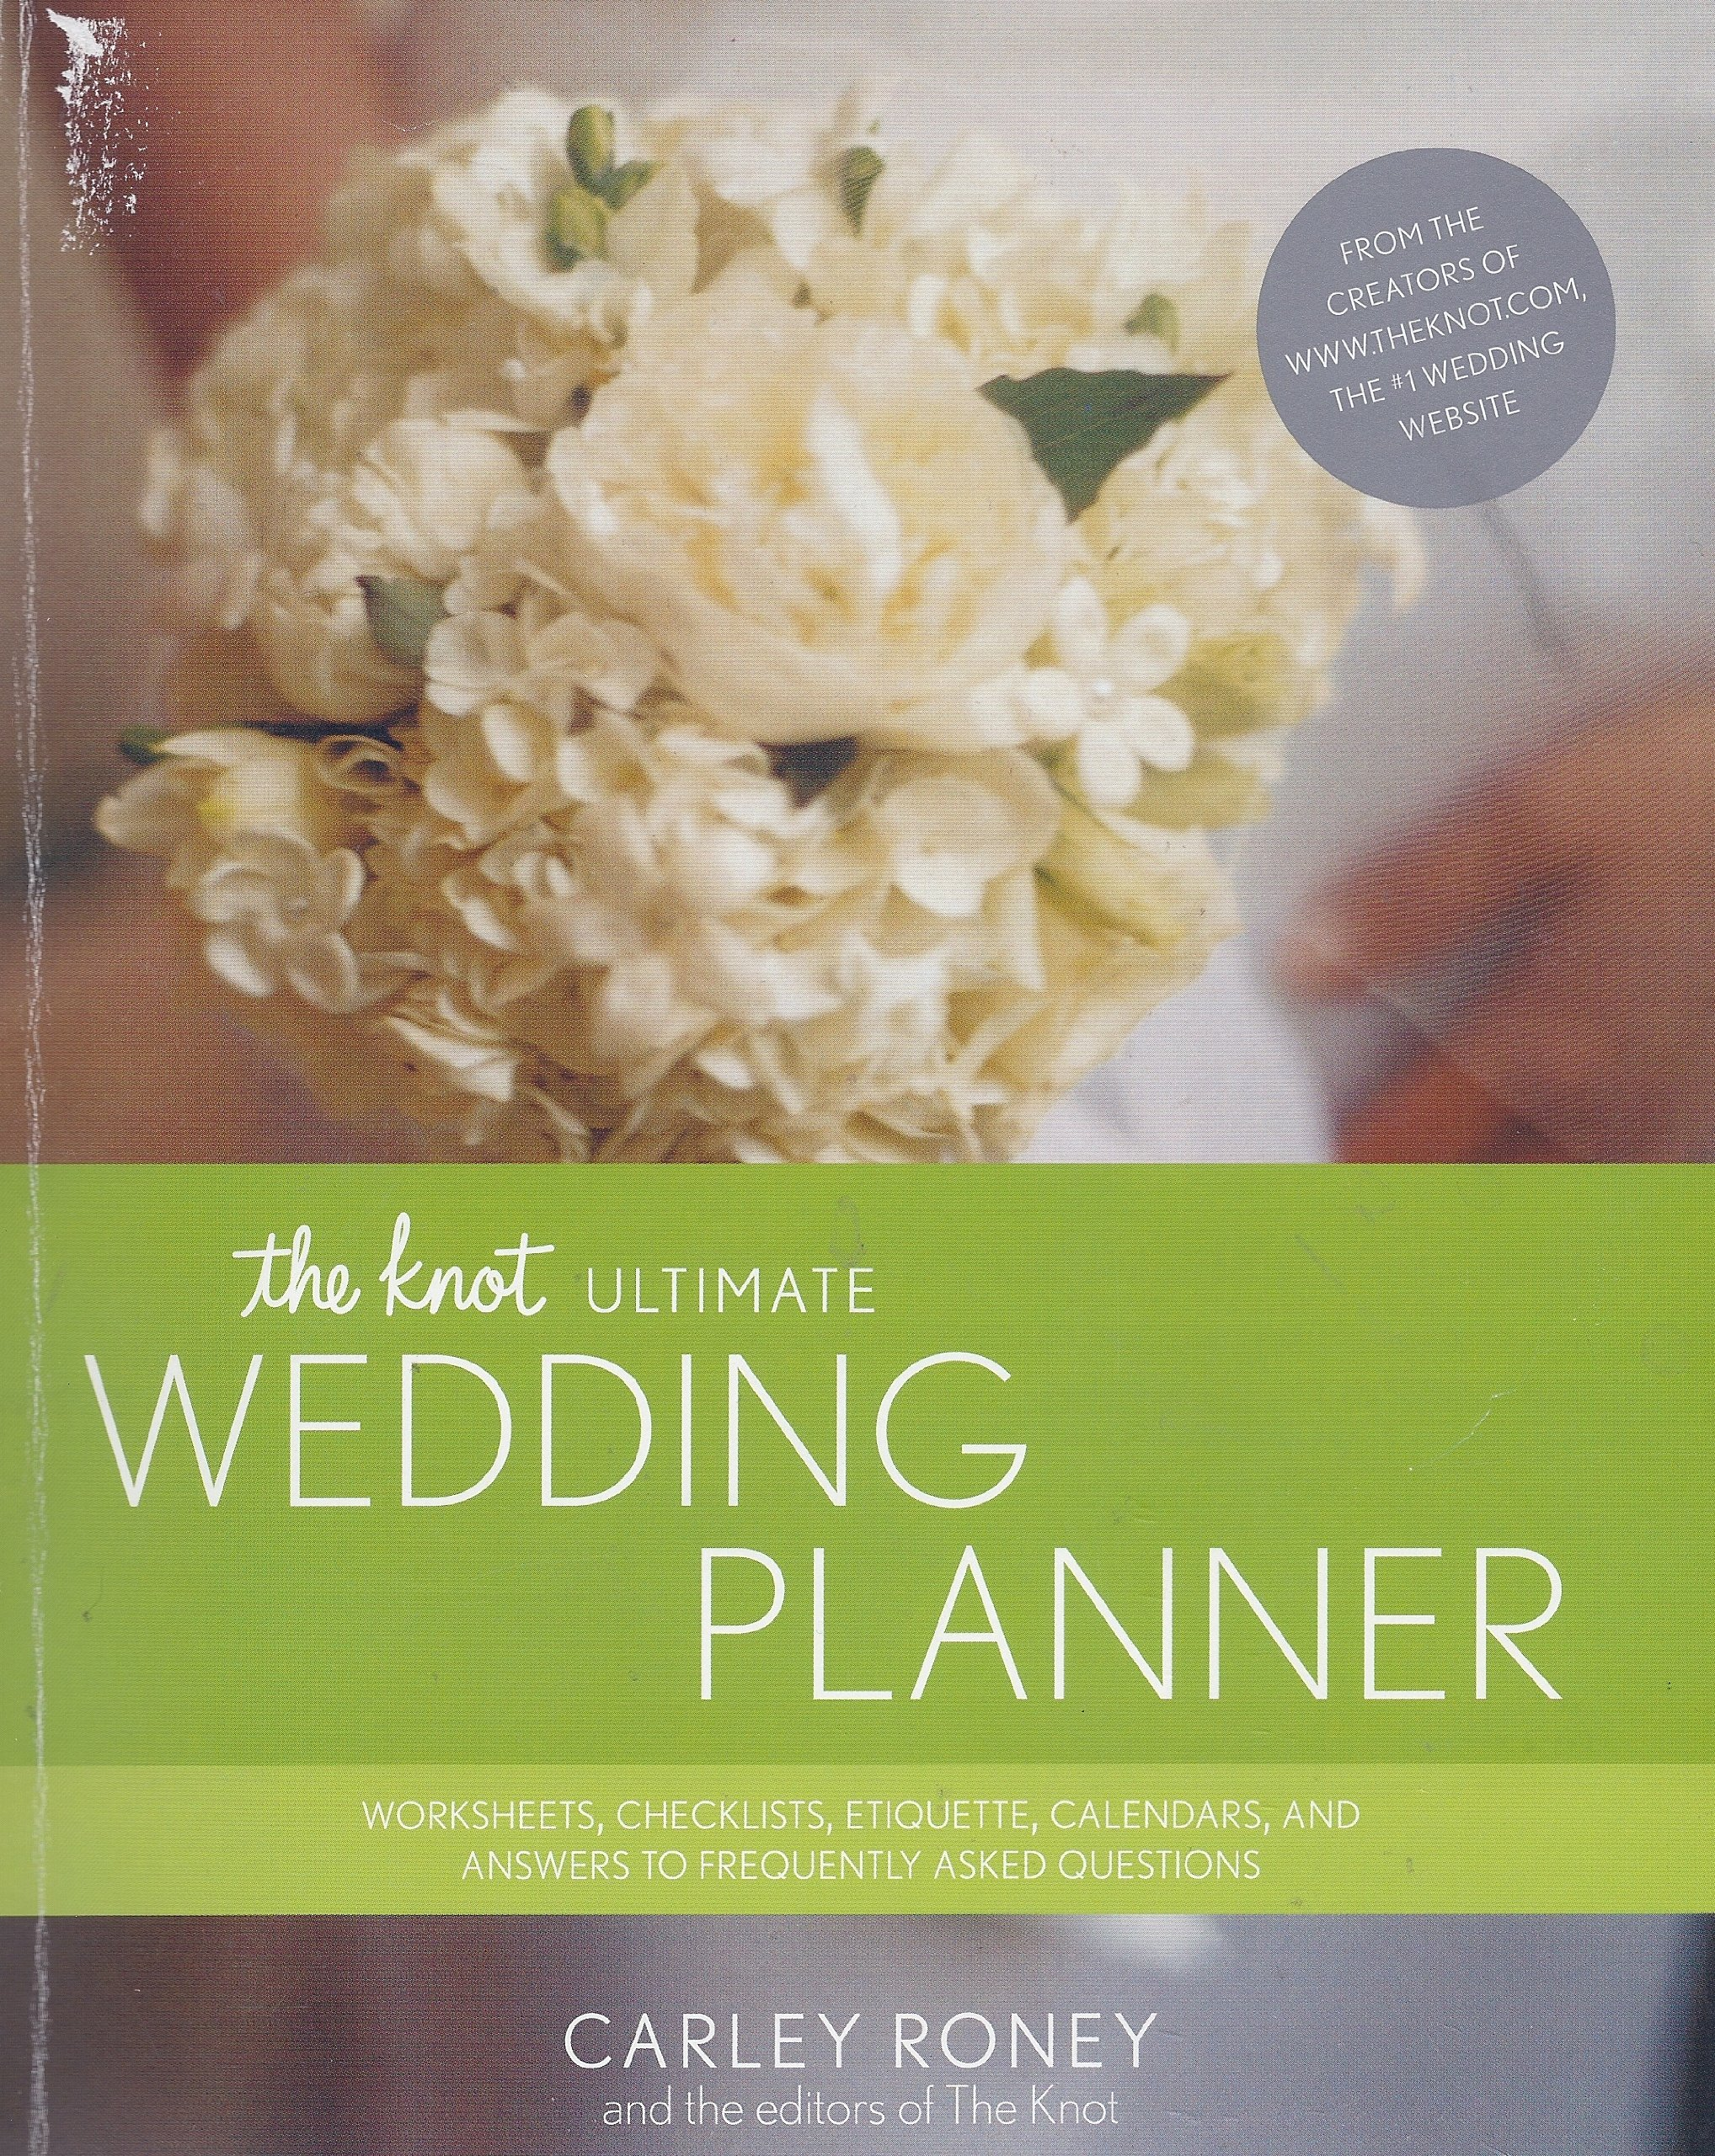 The Knot Ultimate Wedding Planner: Carley Roney: 10